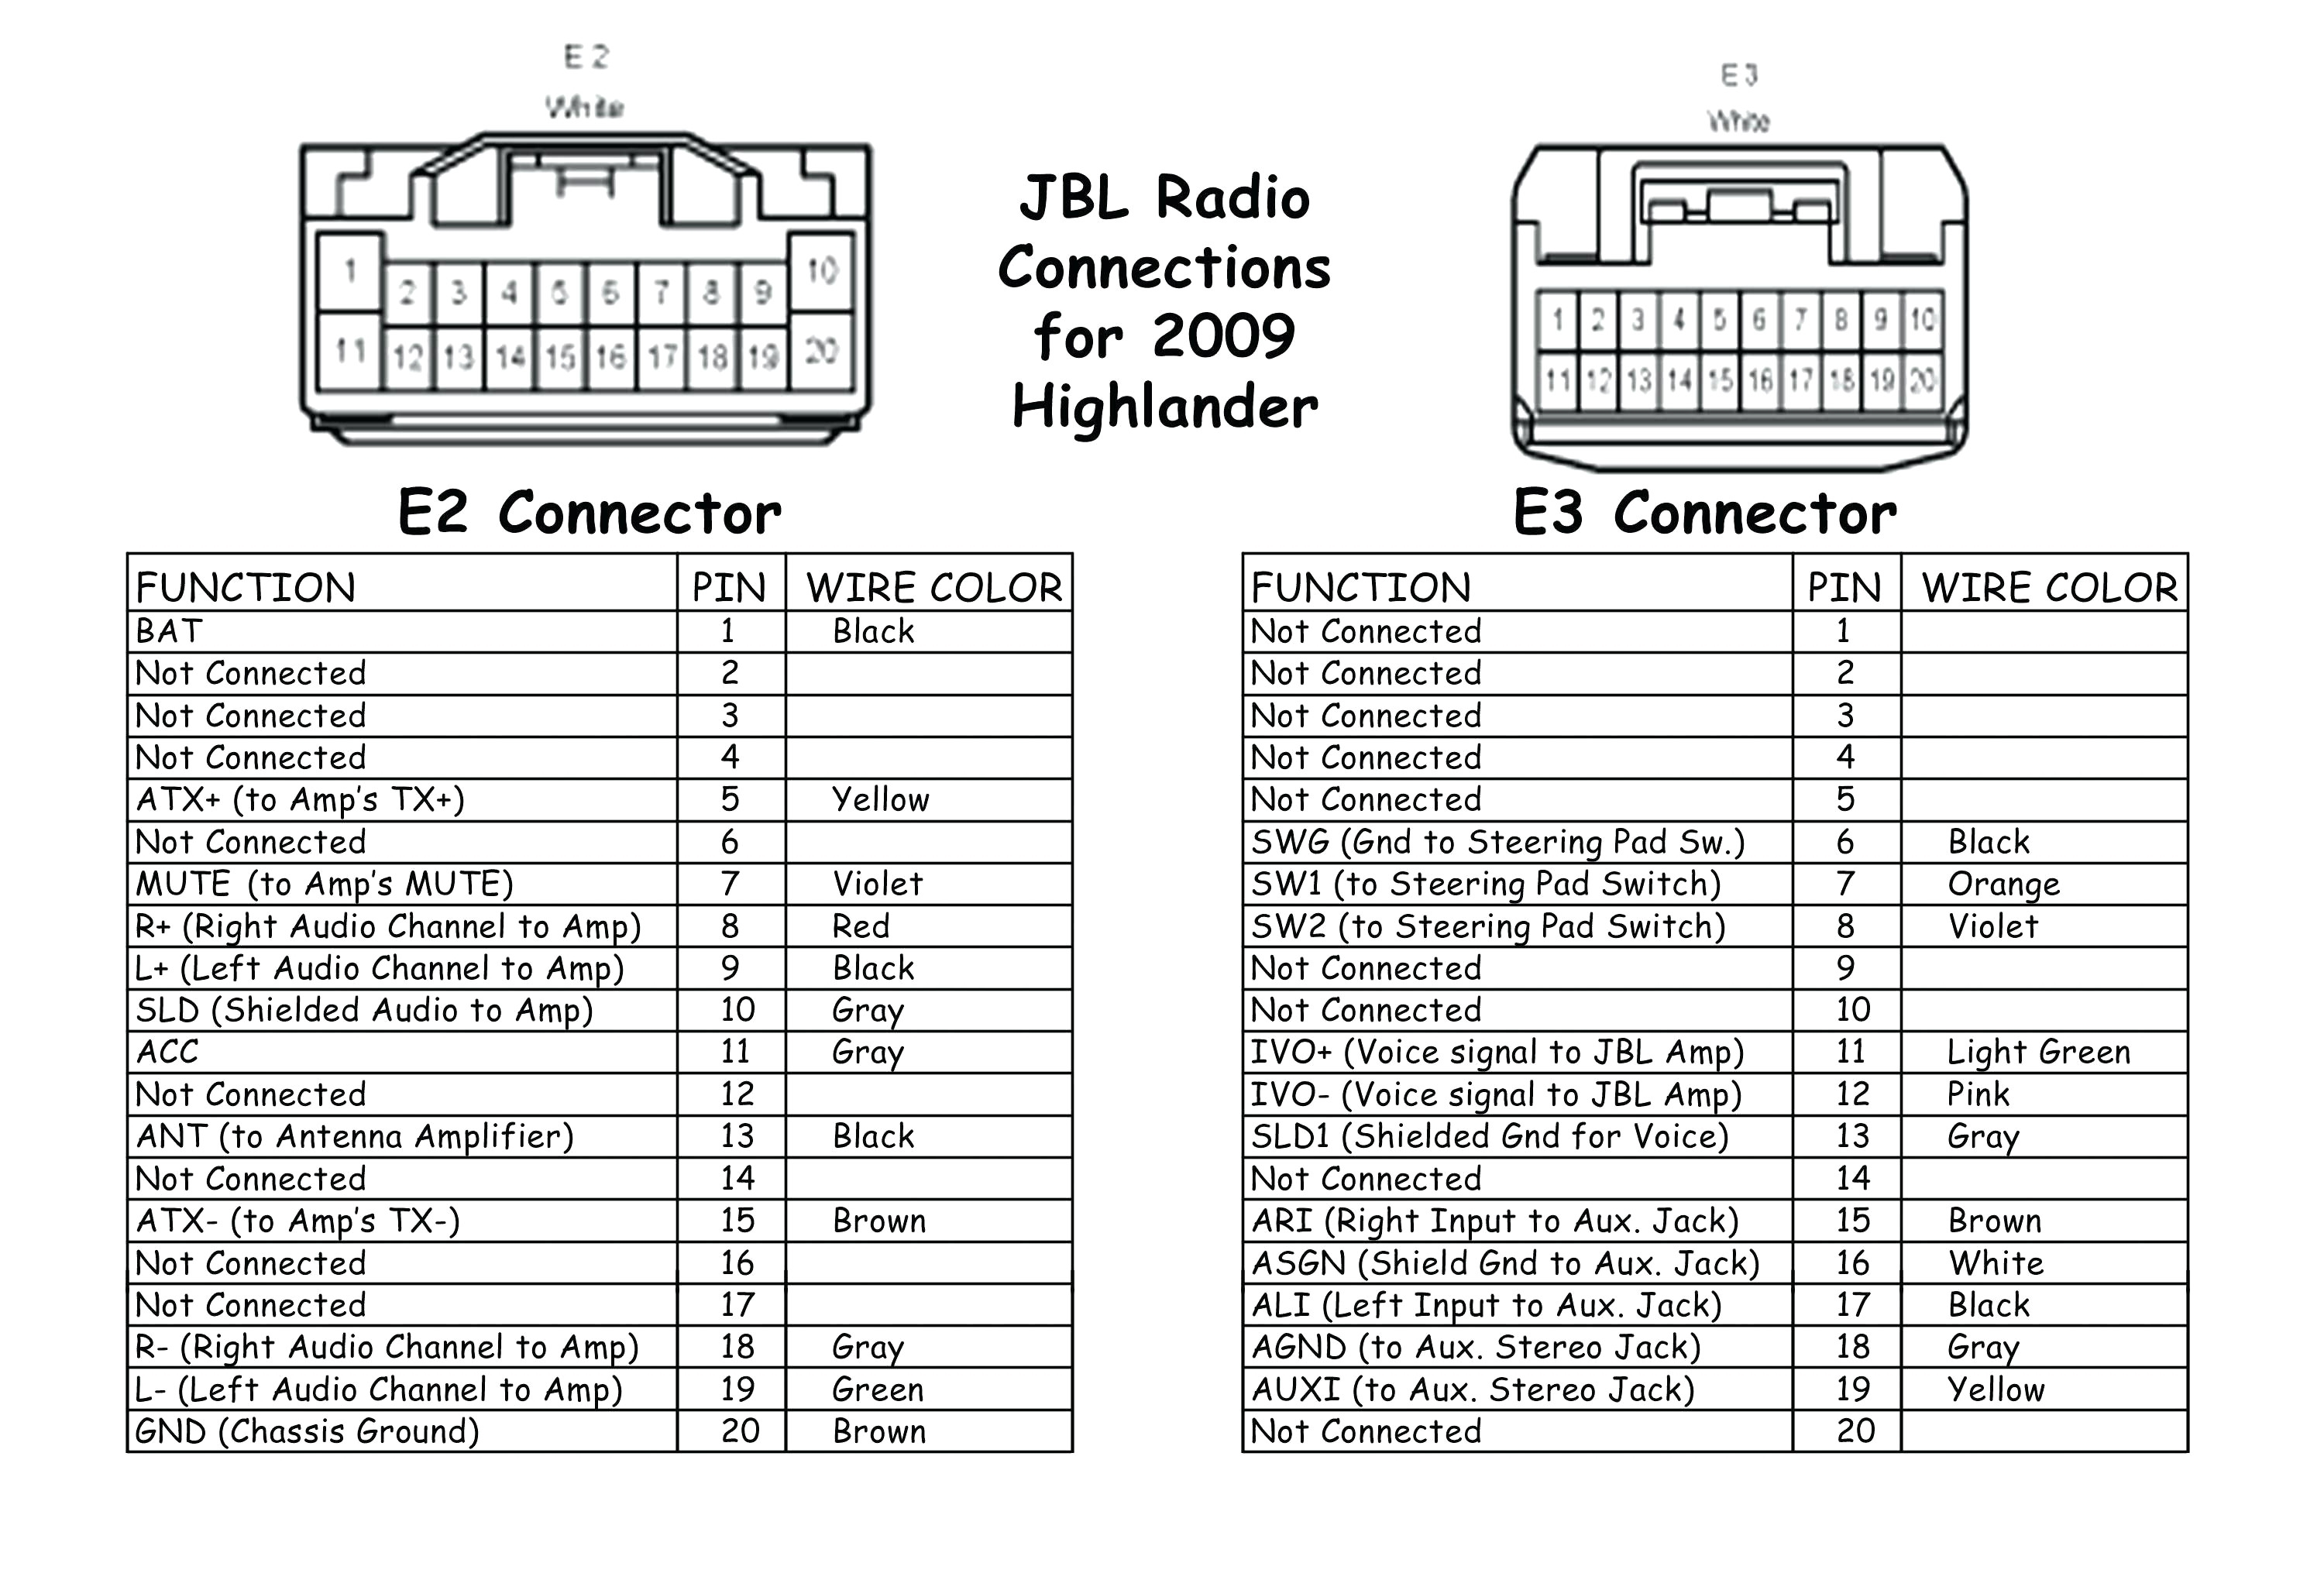 1995 toyota avalon radio wiring diagram Download-1995 toyota Camry Radio Wiring Diagram toyota Camry Wiring Diagram Furthermore toyota Radio Wiring Diagrams 17-q